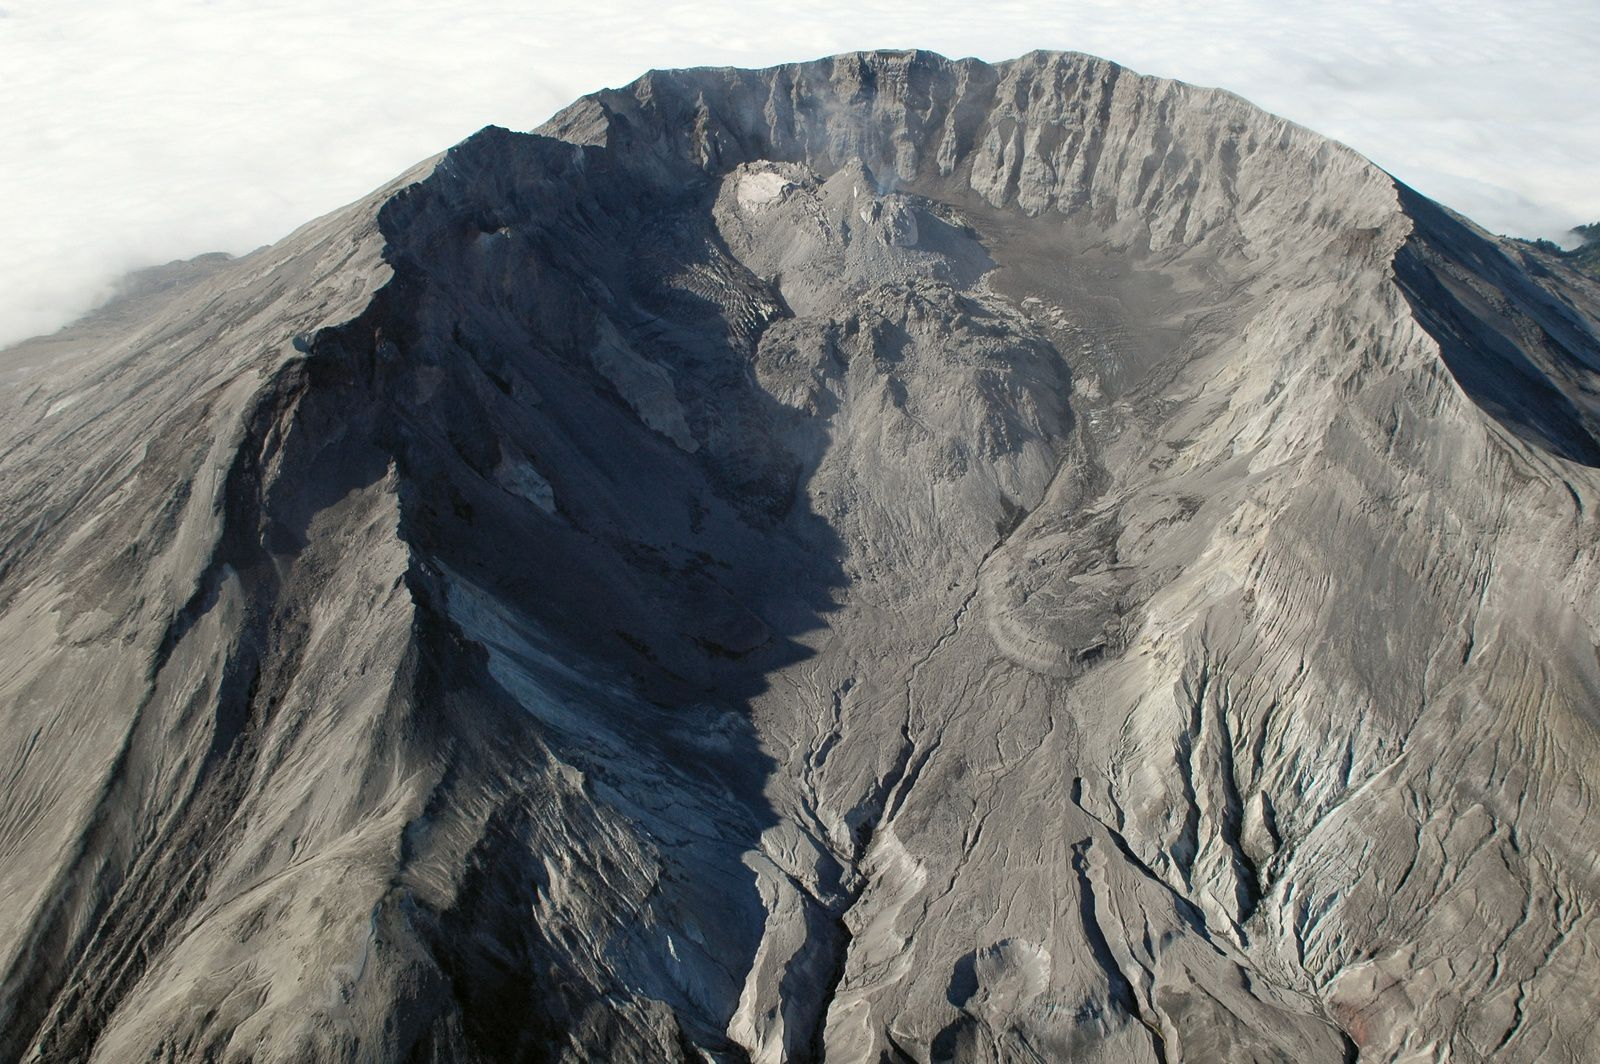 The dome in the crater of St. Helens as seen from the north 10.08.2005 - USGS Photo